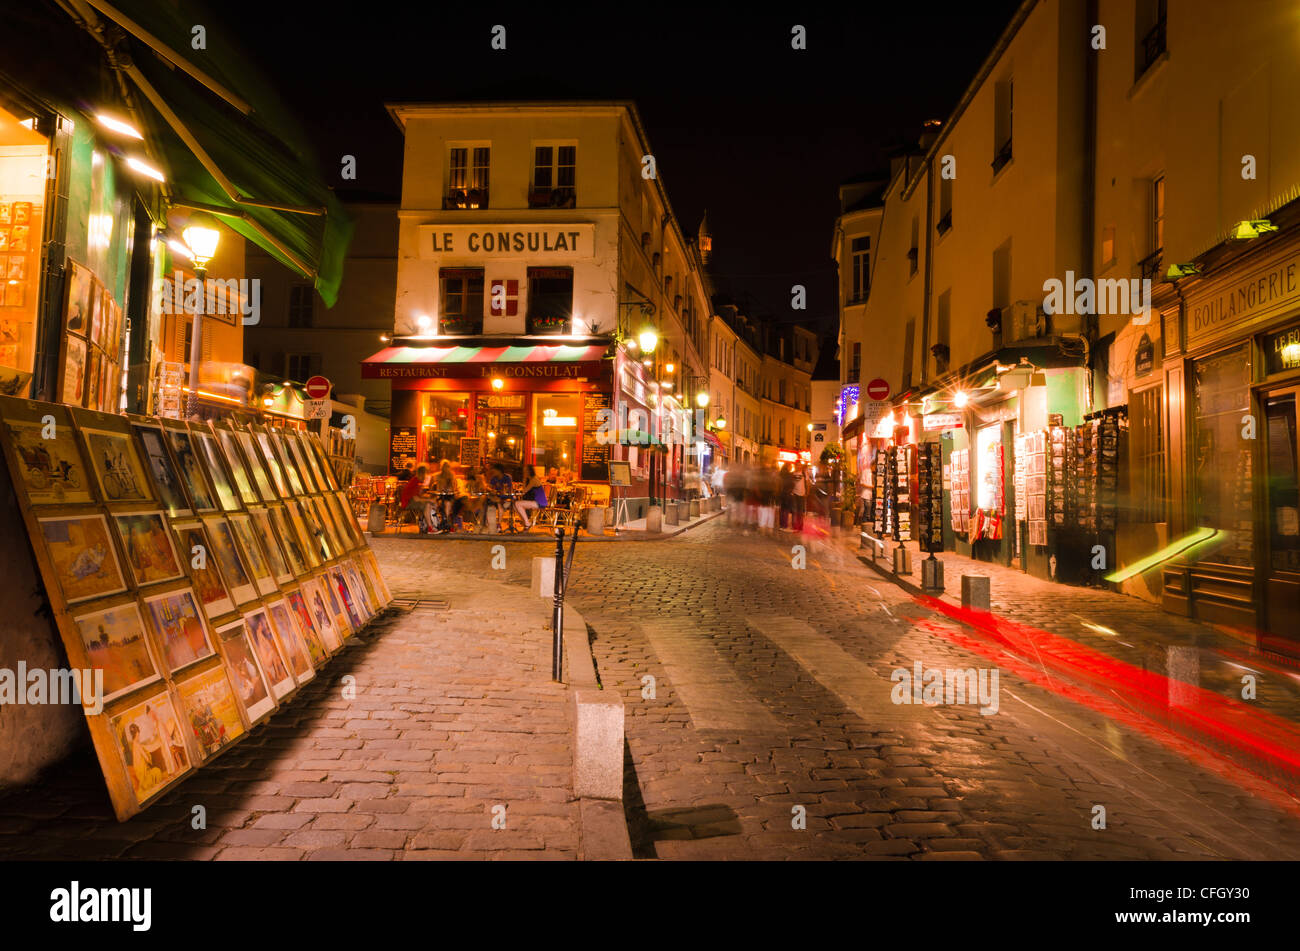 Le Miroir Restaurant Montmartre Of Le Consulat Restaurant Montmartre Paris France Stock